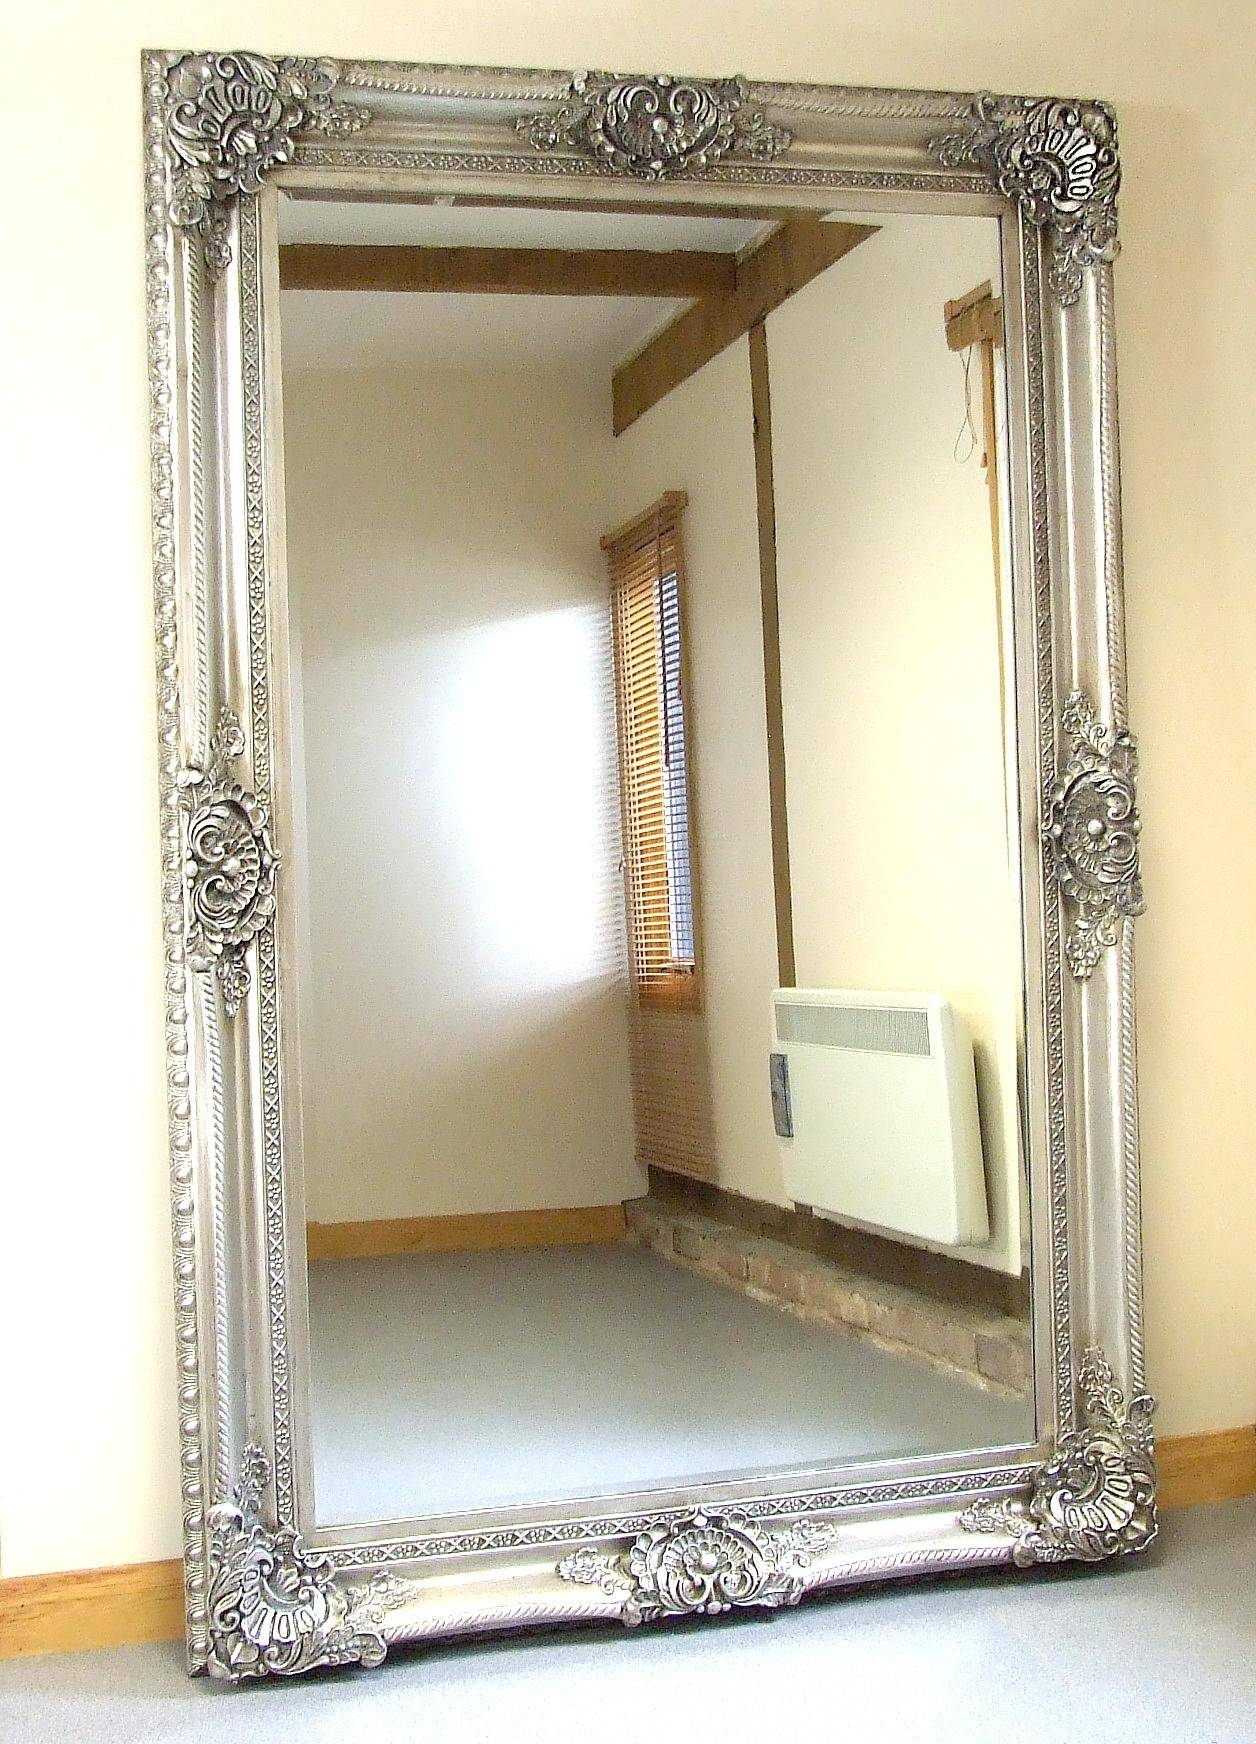 Mirror : Beautiful Ornate Floor Mirrors Extra Large Silver Antique For Ornate Floor Mirrors (View 4 of 15)